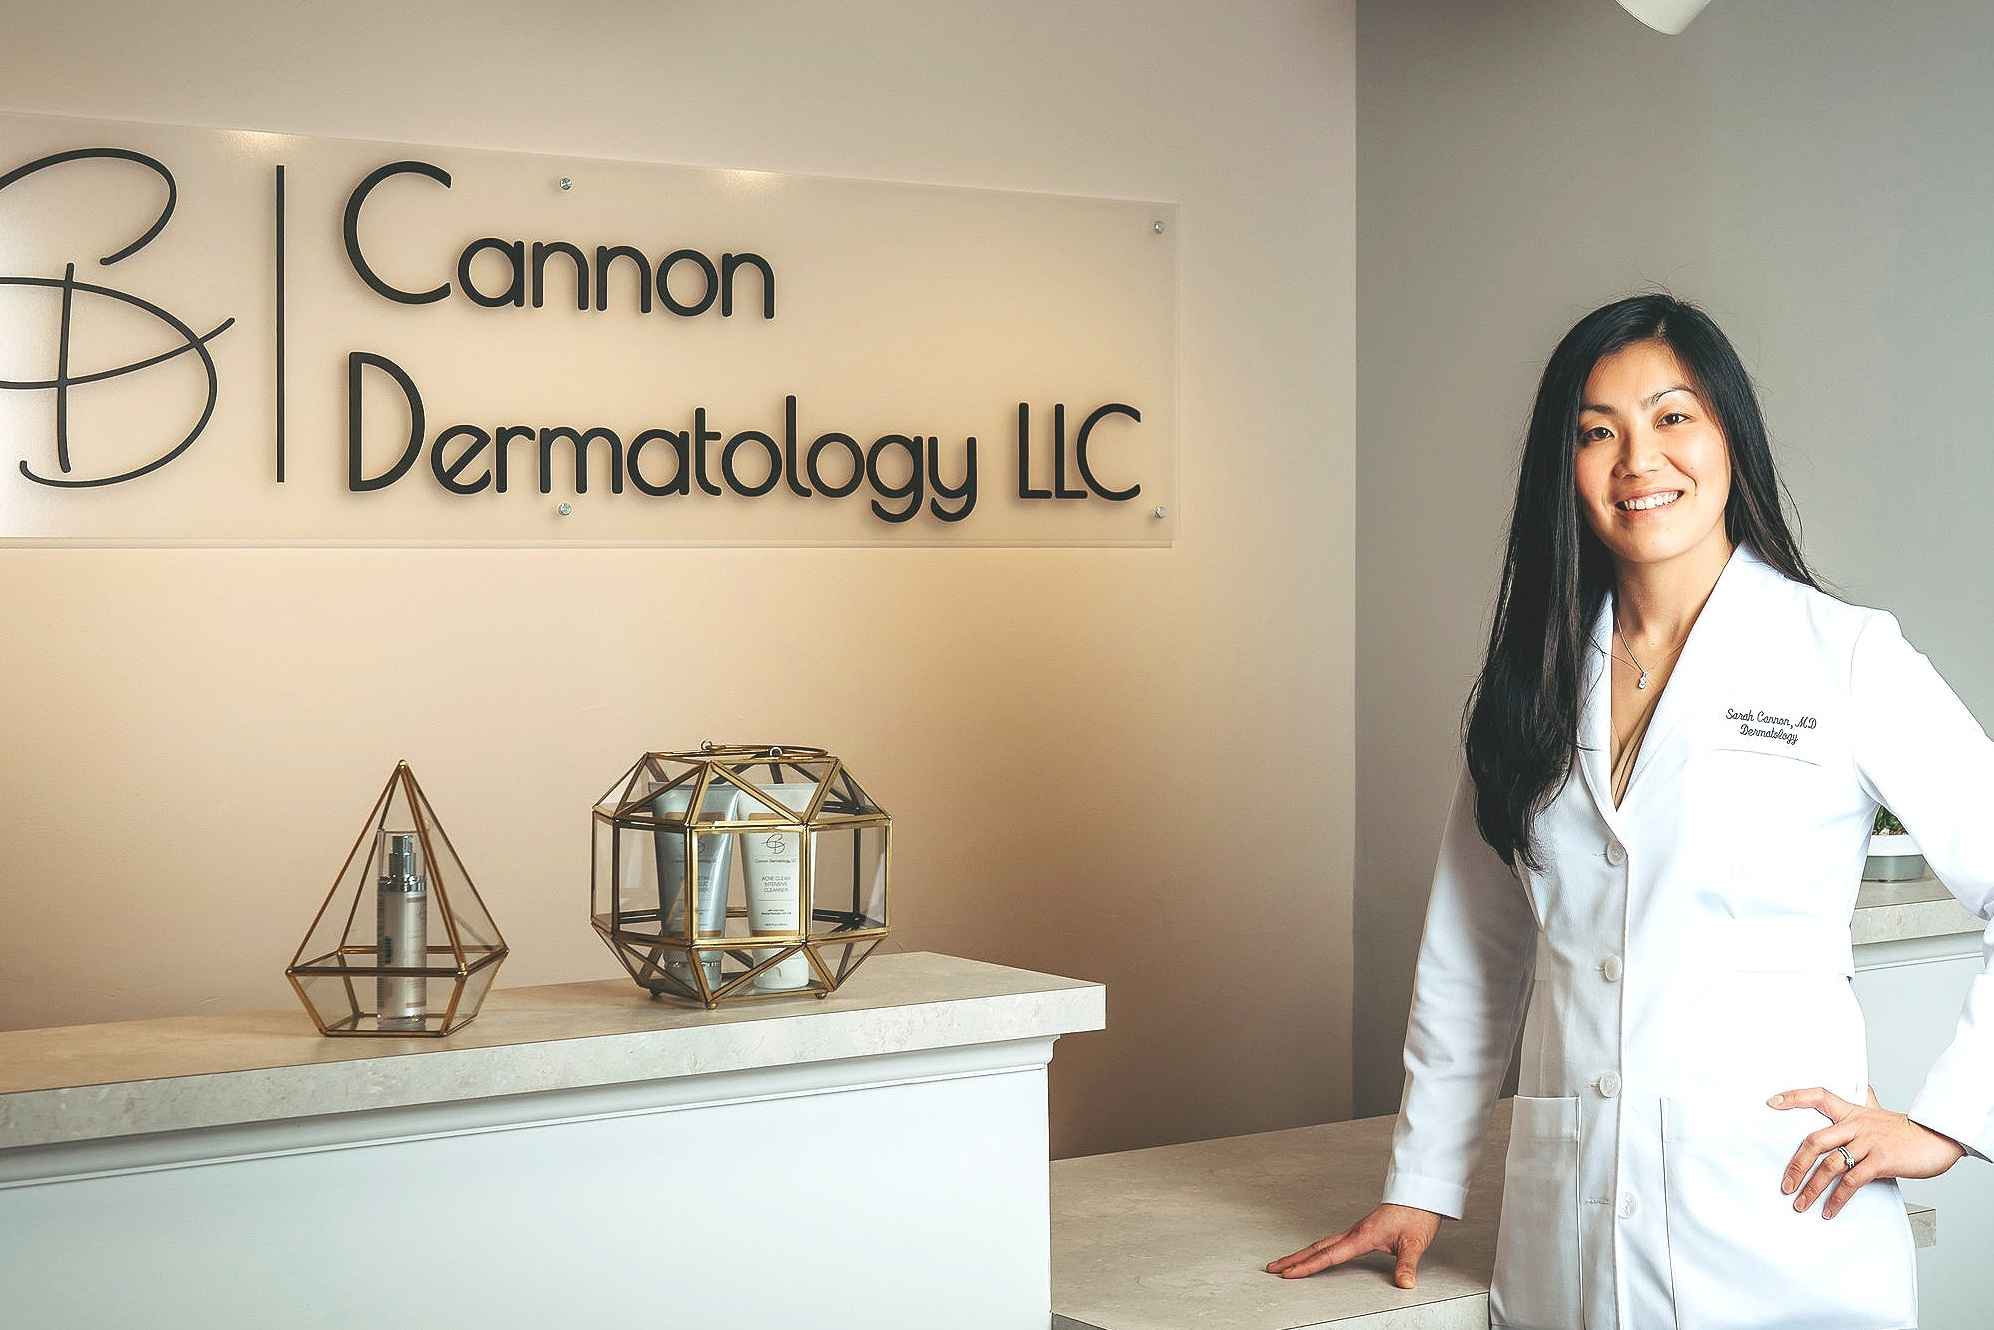 About - Learn more about Dr. Cannon and her commitment to quality care.